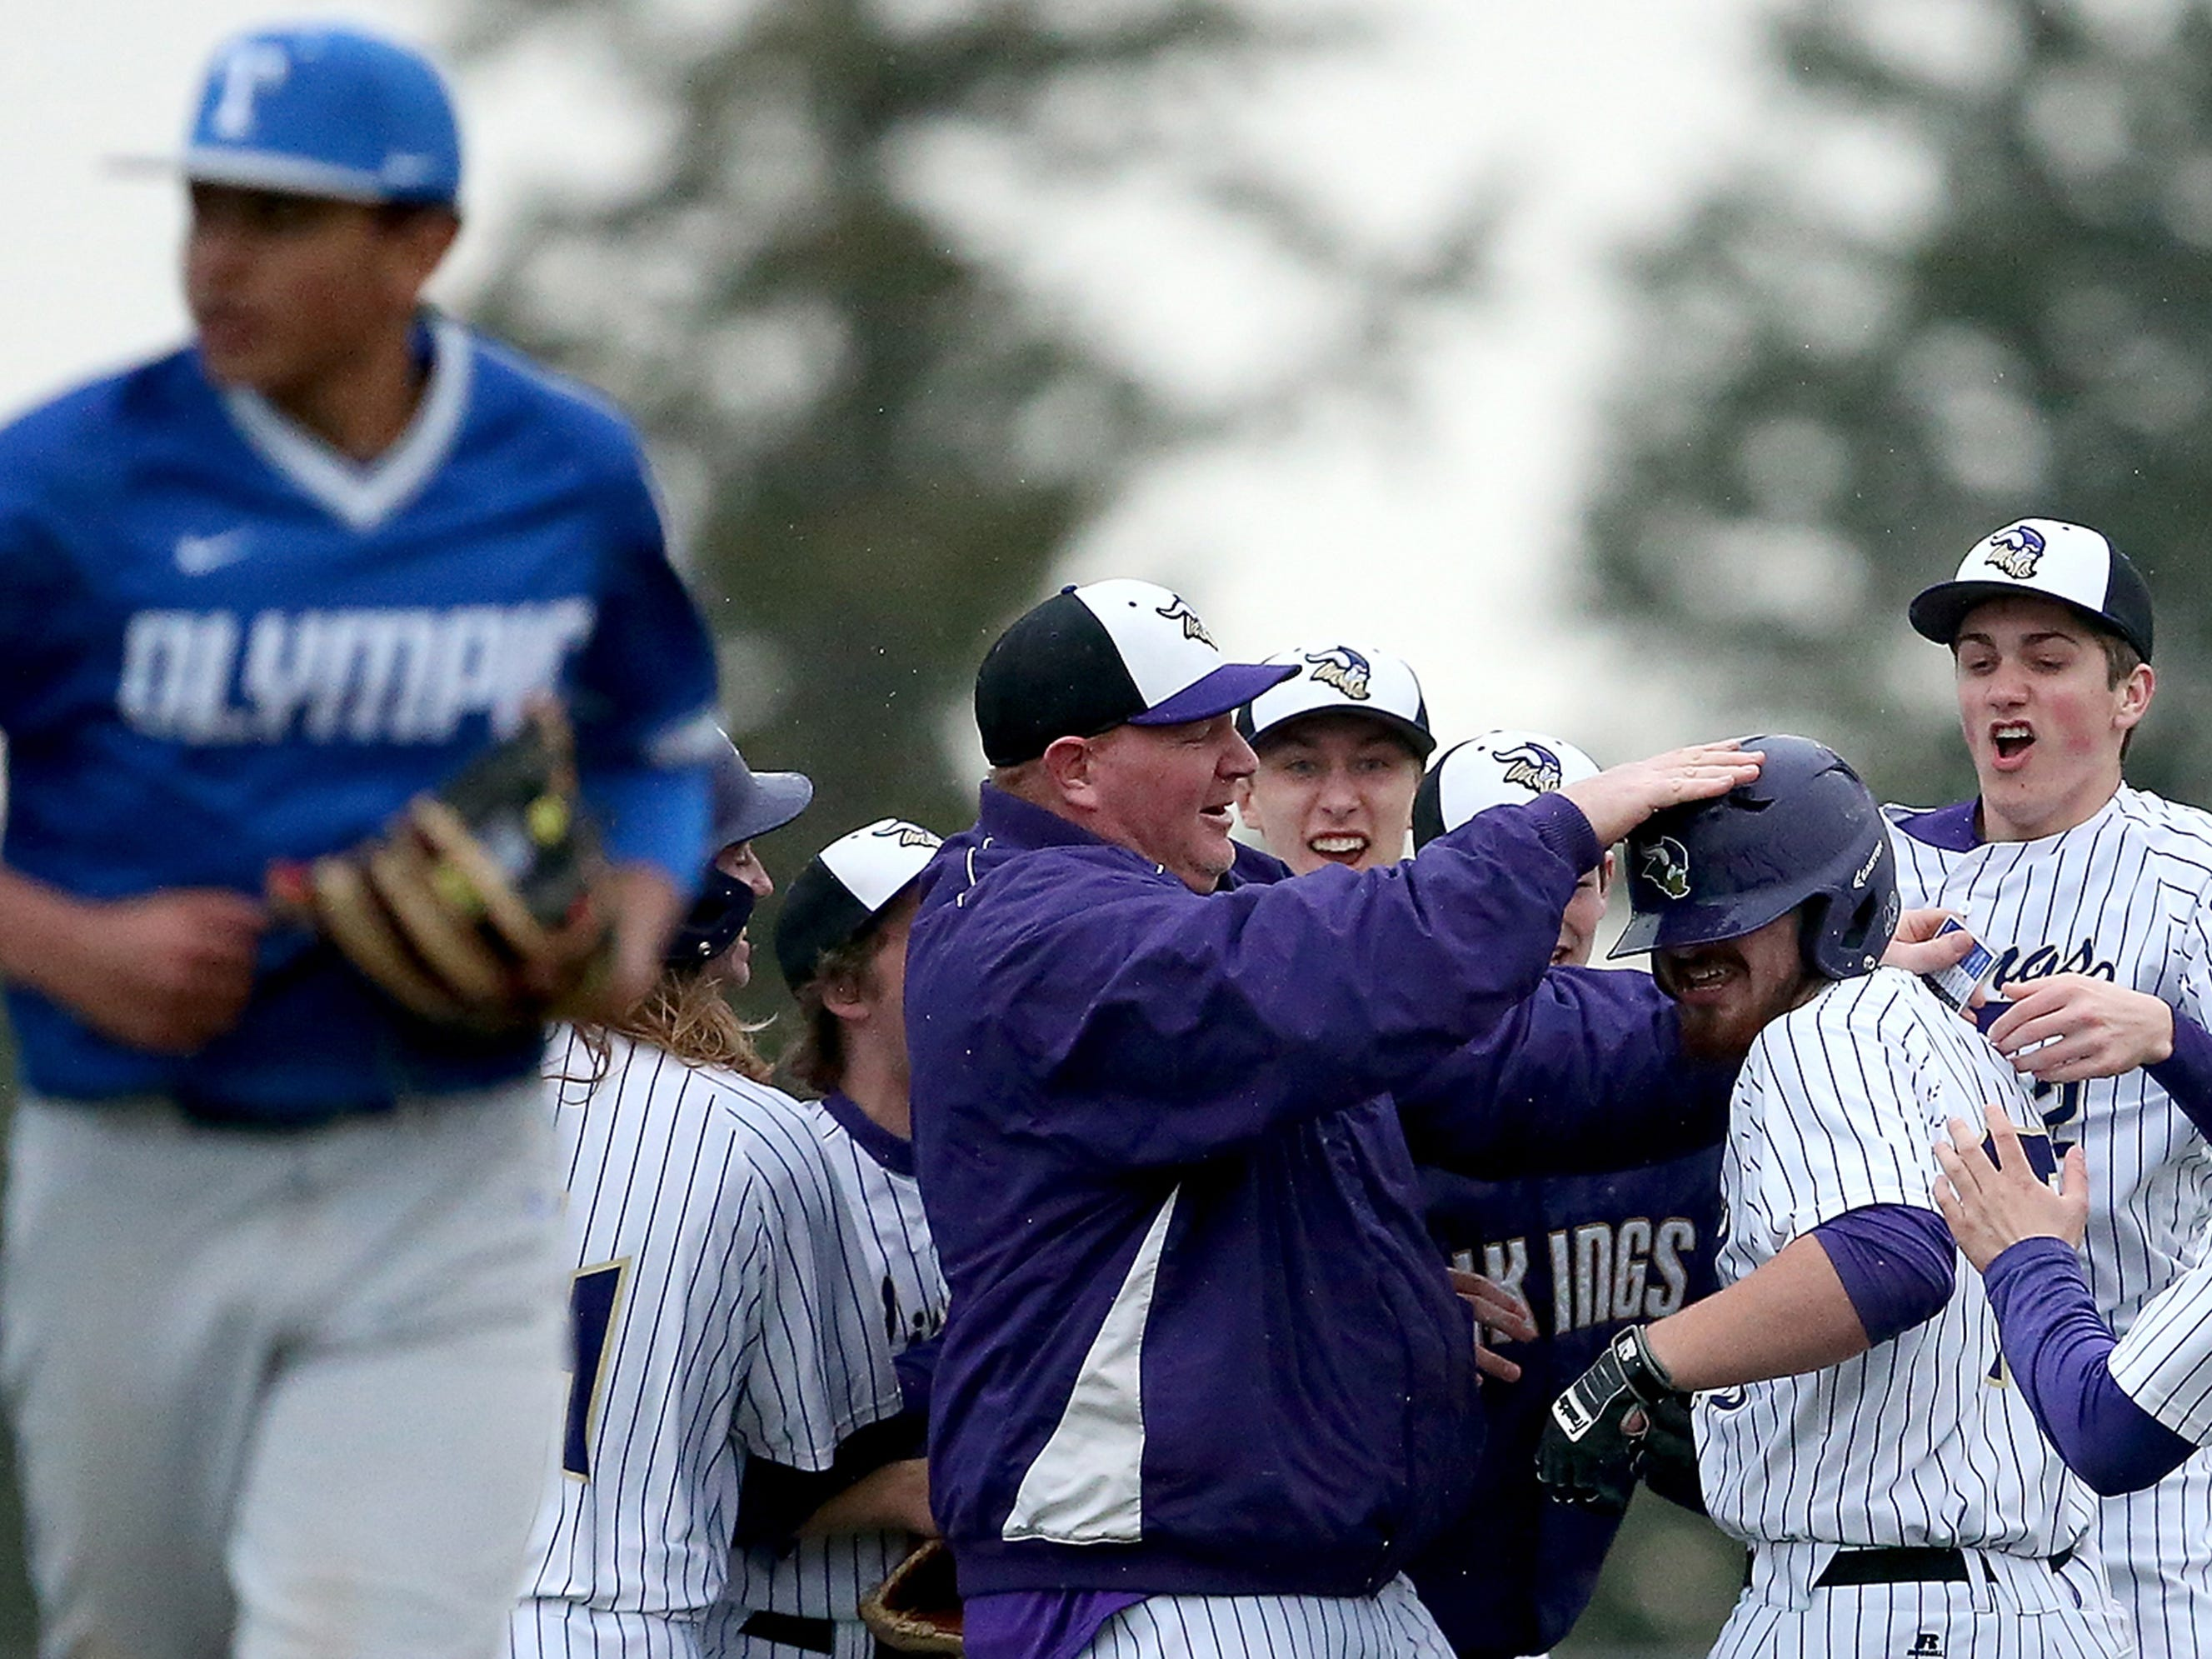 North Kitsap coach Jeff Weible and his team congratulate Tucker Gowin on his game winning hit in the seventh inning against Olympic in Poulsbo, Washington on Wednesday, March 21, 2018.